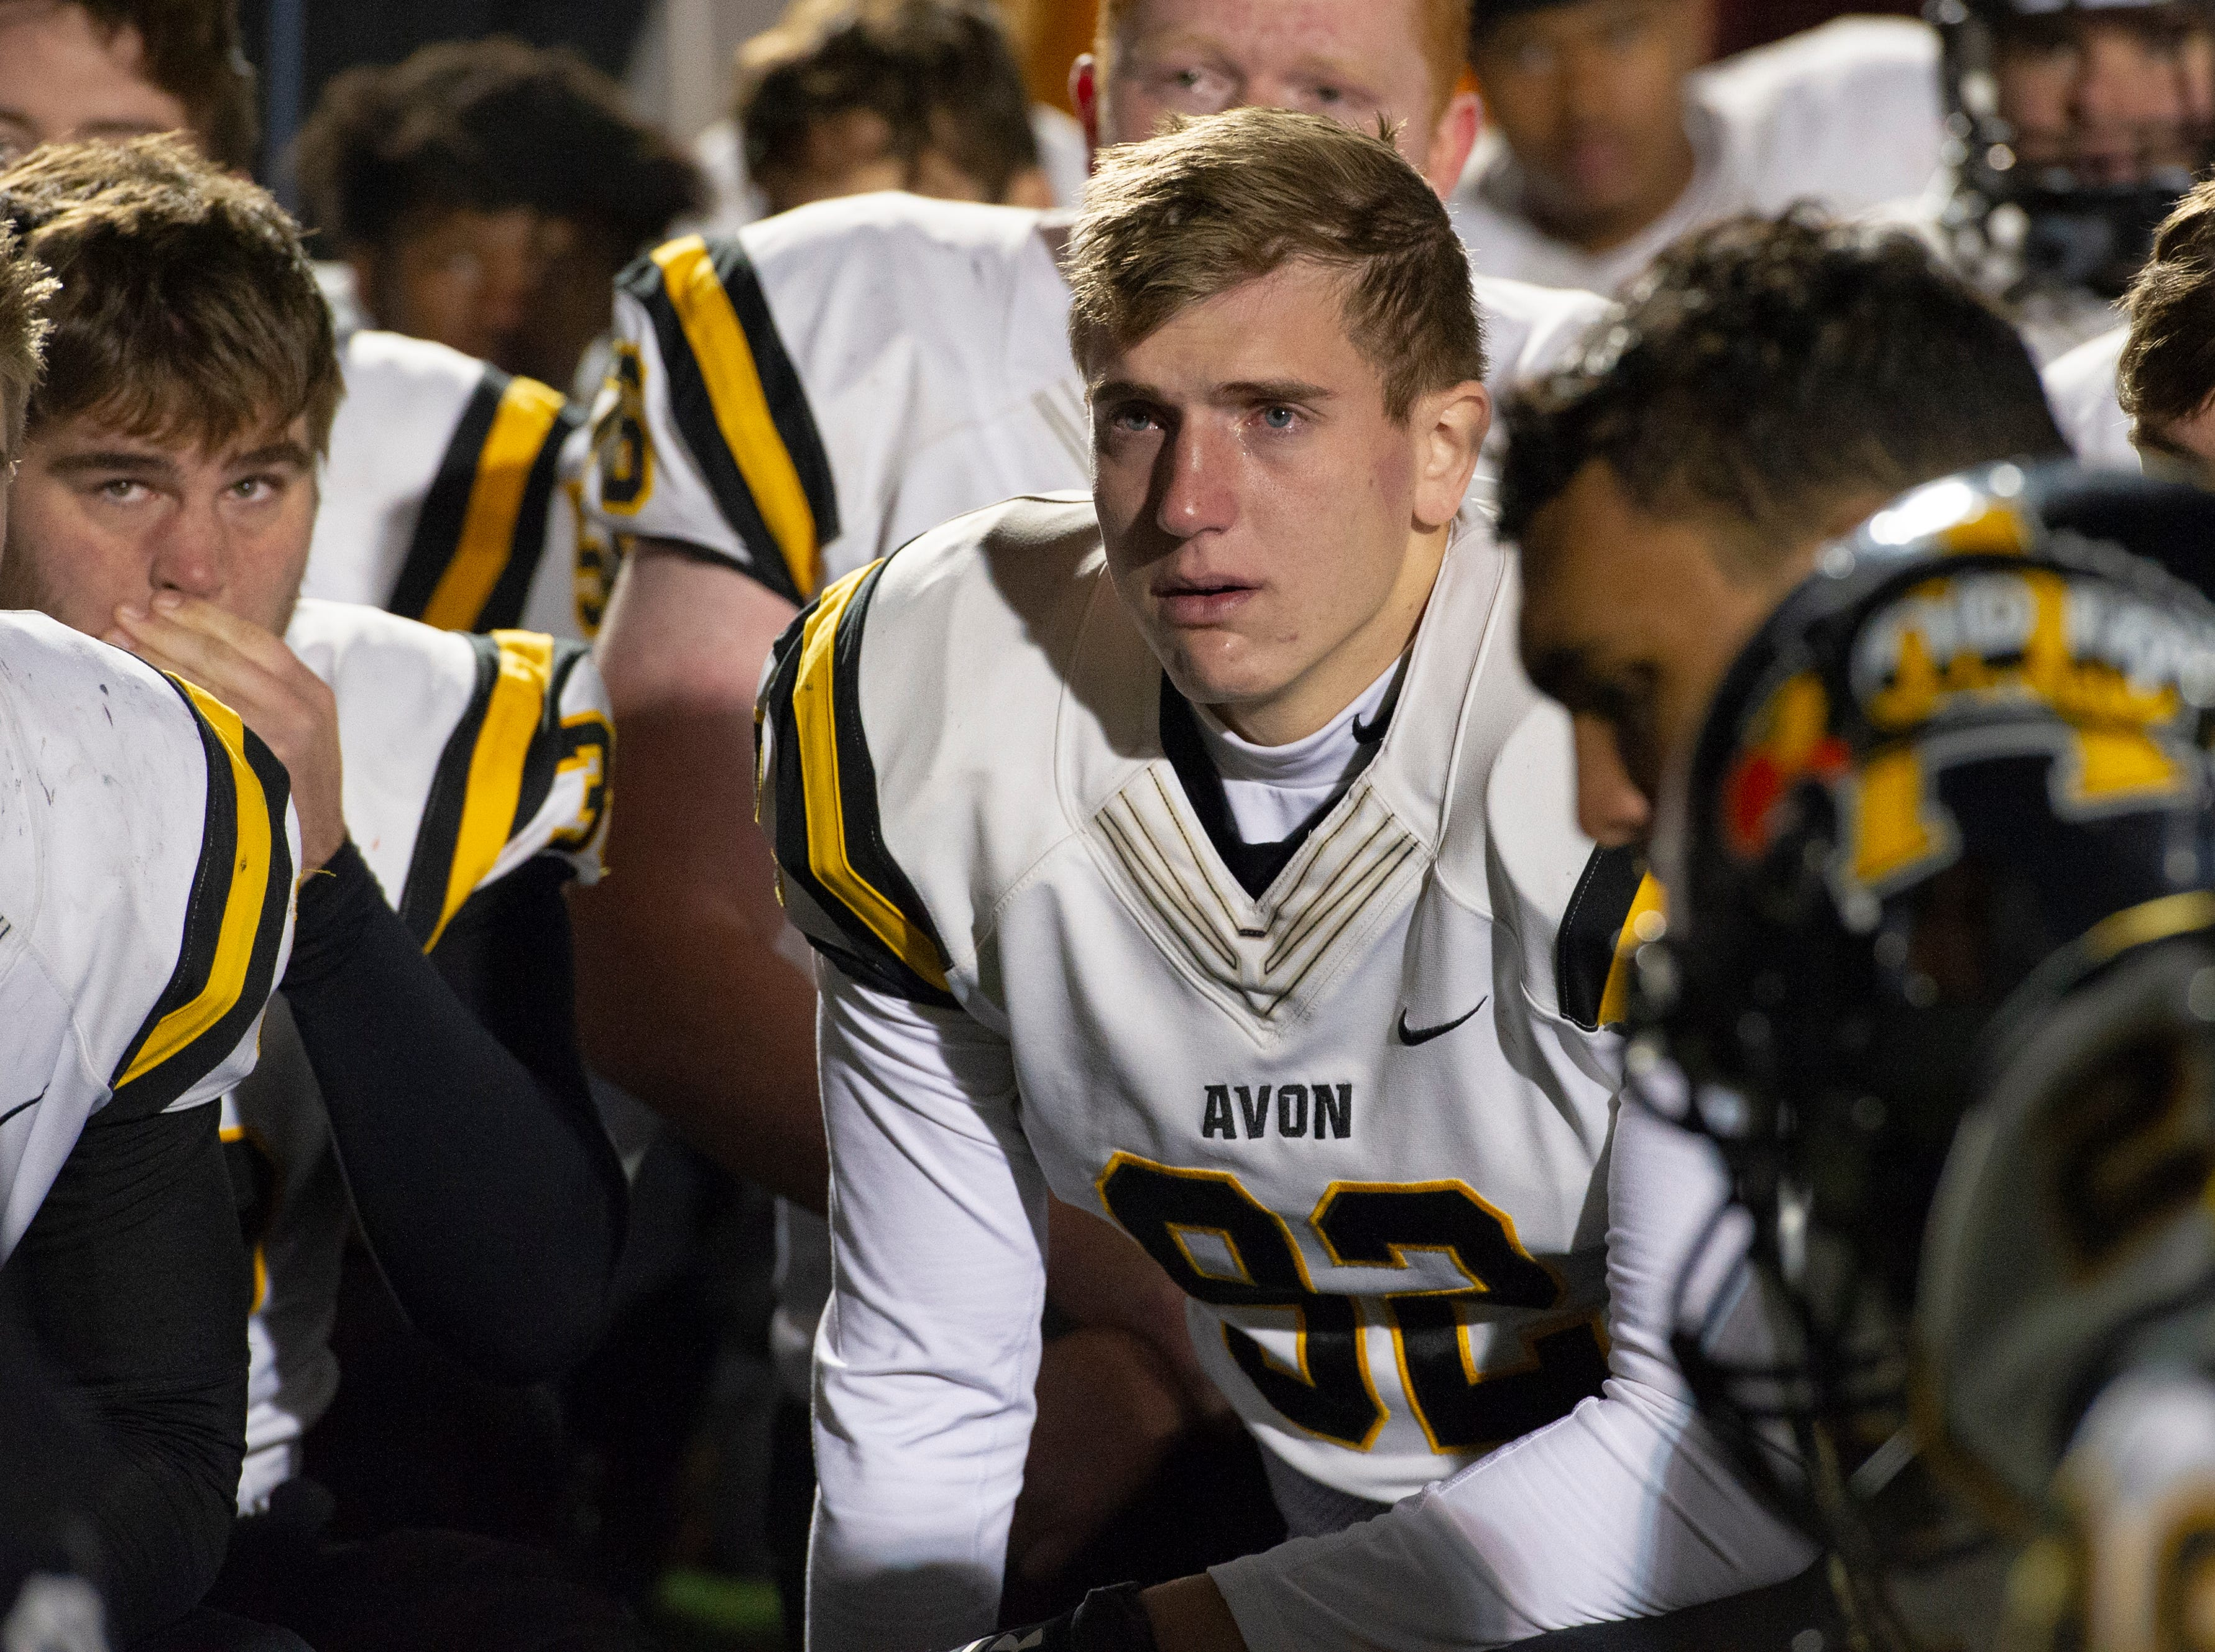 Avon High School senior Connor Wakefield (92) and other players react to the team's loss. Center Grove High School hosted Avon High School in an IHSAA Class 6A Regional Championship varsity football game, Friday, Nov. 9, 2018. Center Grove won 17-0 to advance to semi-state.